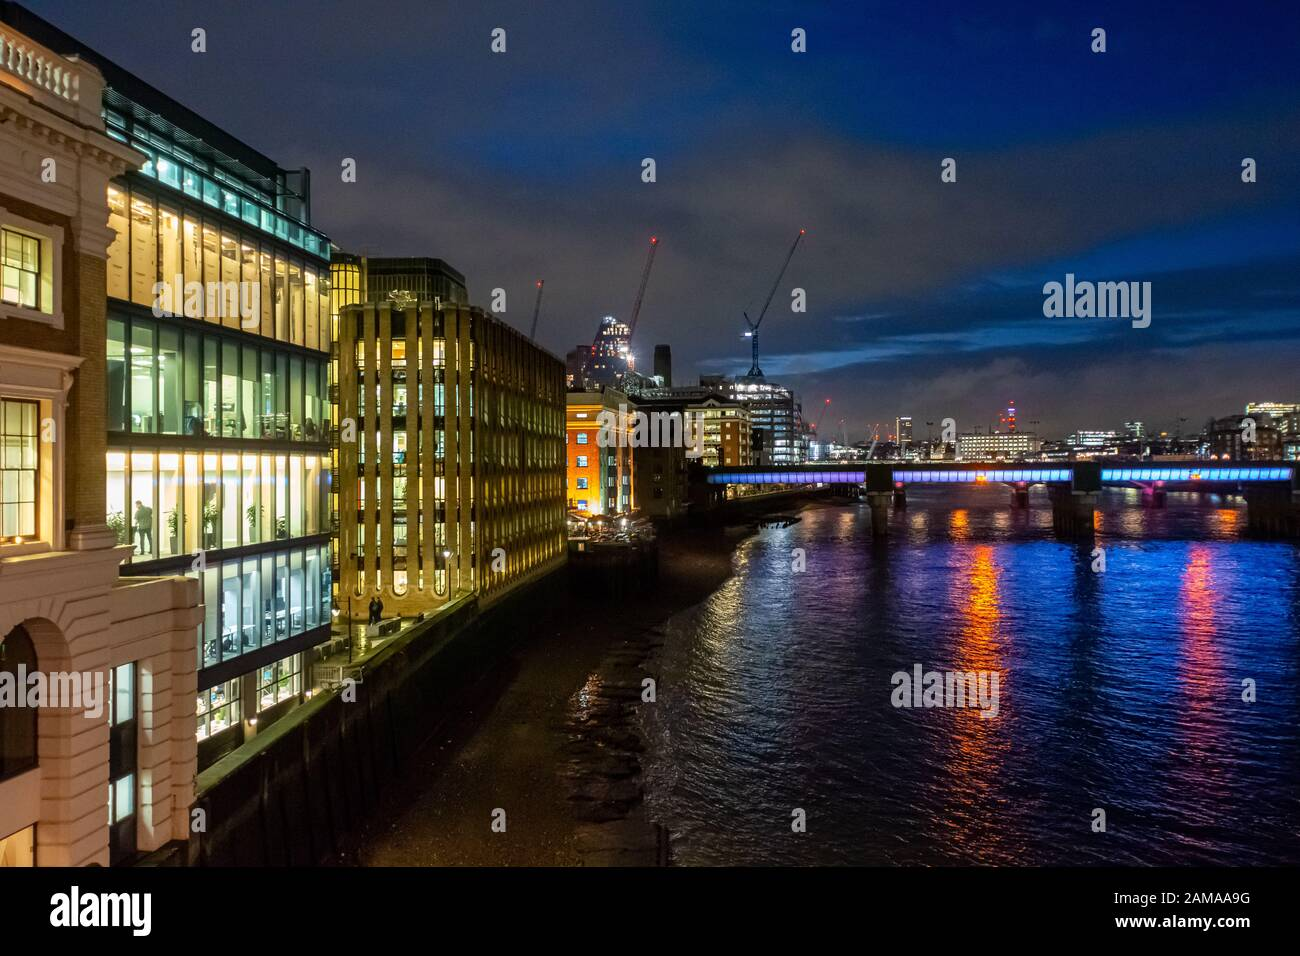 Looking west from London Bridge along the River Thames towards Cannon Street Railway Bridge at night with illuminated offices on the South Bank, UK Stock Photo